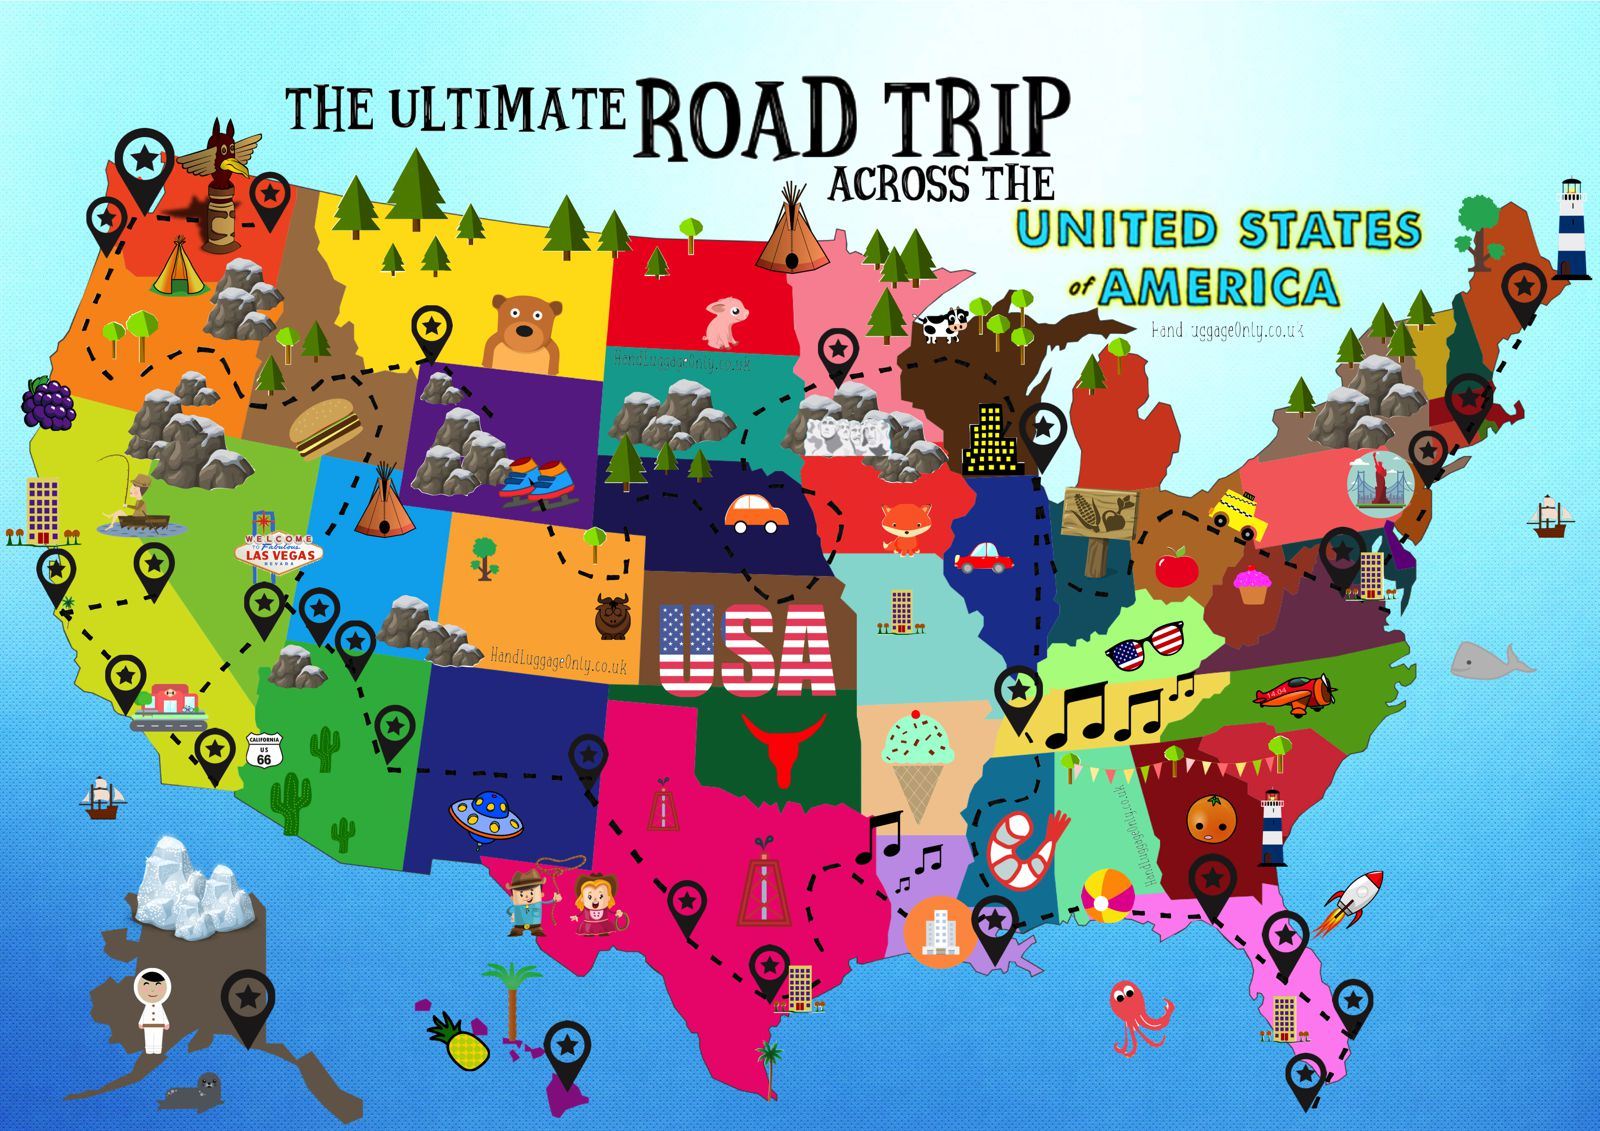 The Ultimate Road Trip Map Of Things To Do In The USA - Hand Luggage ...